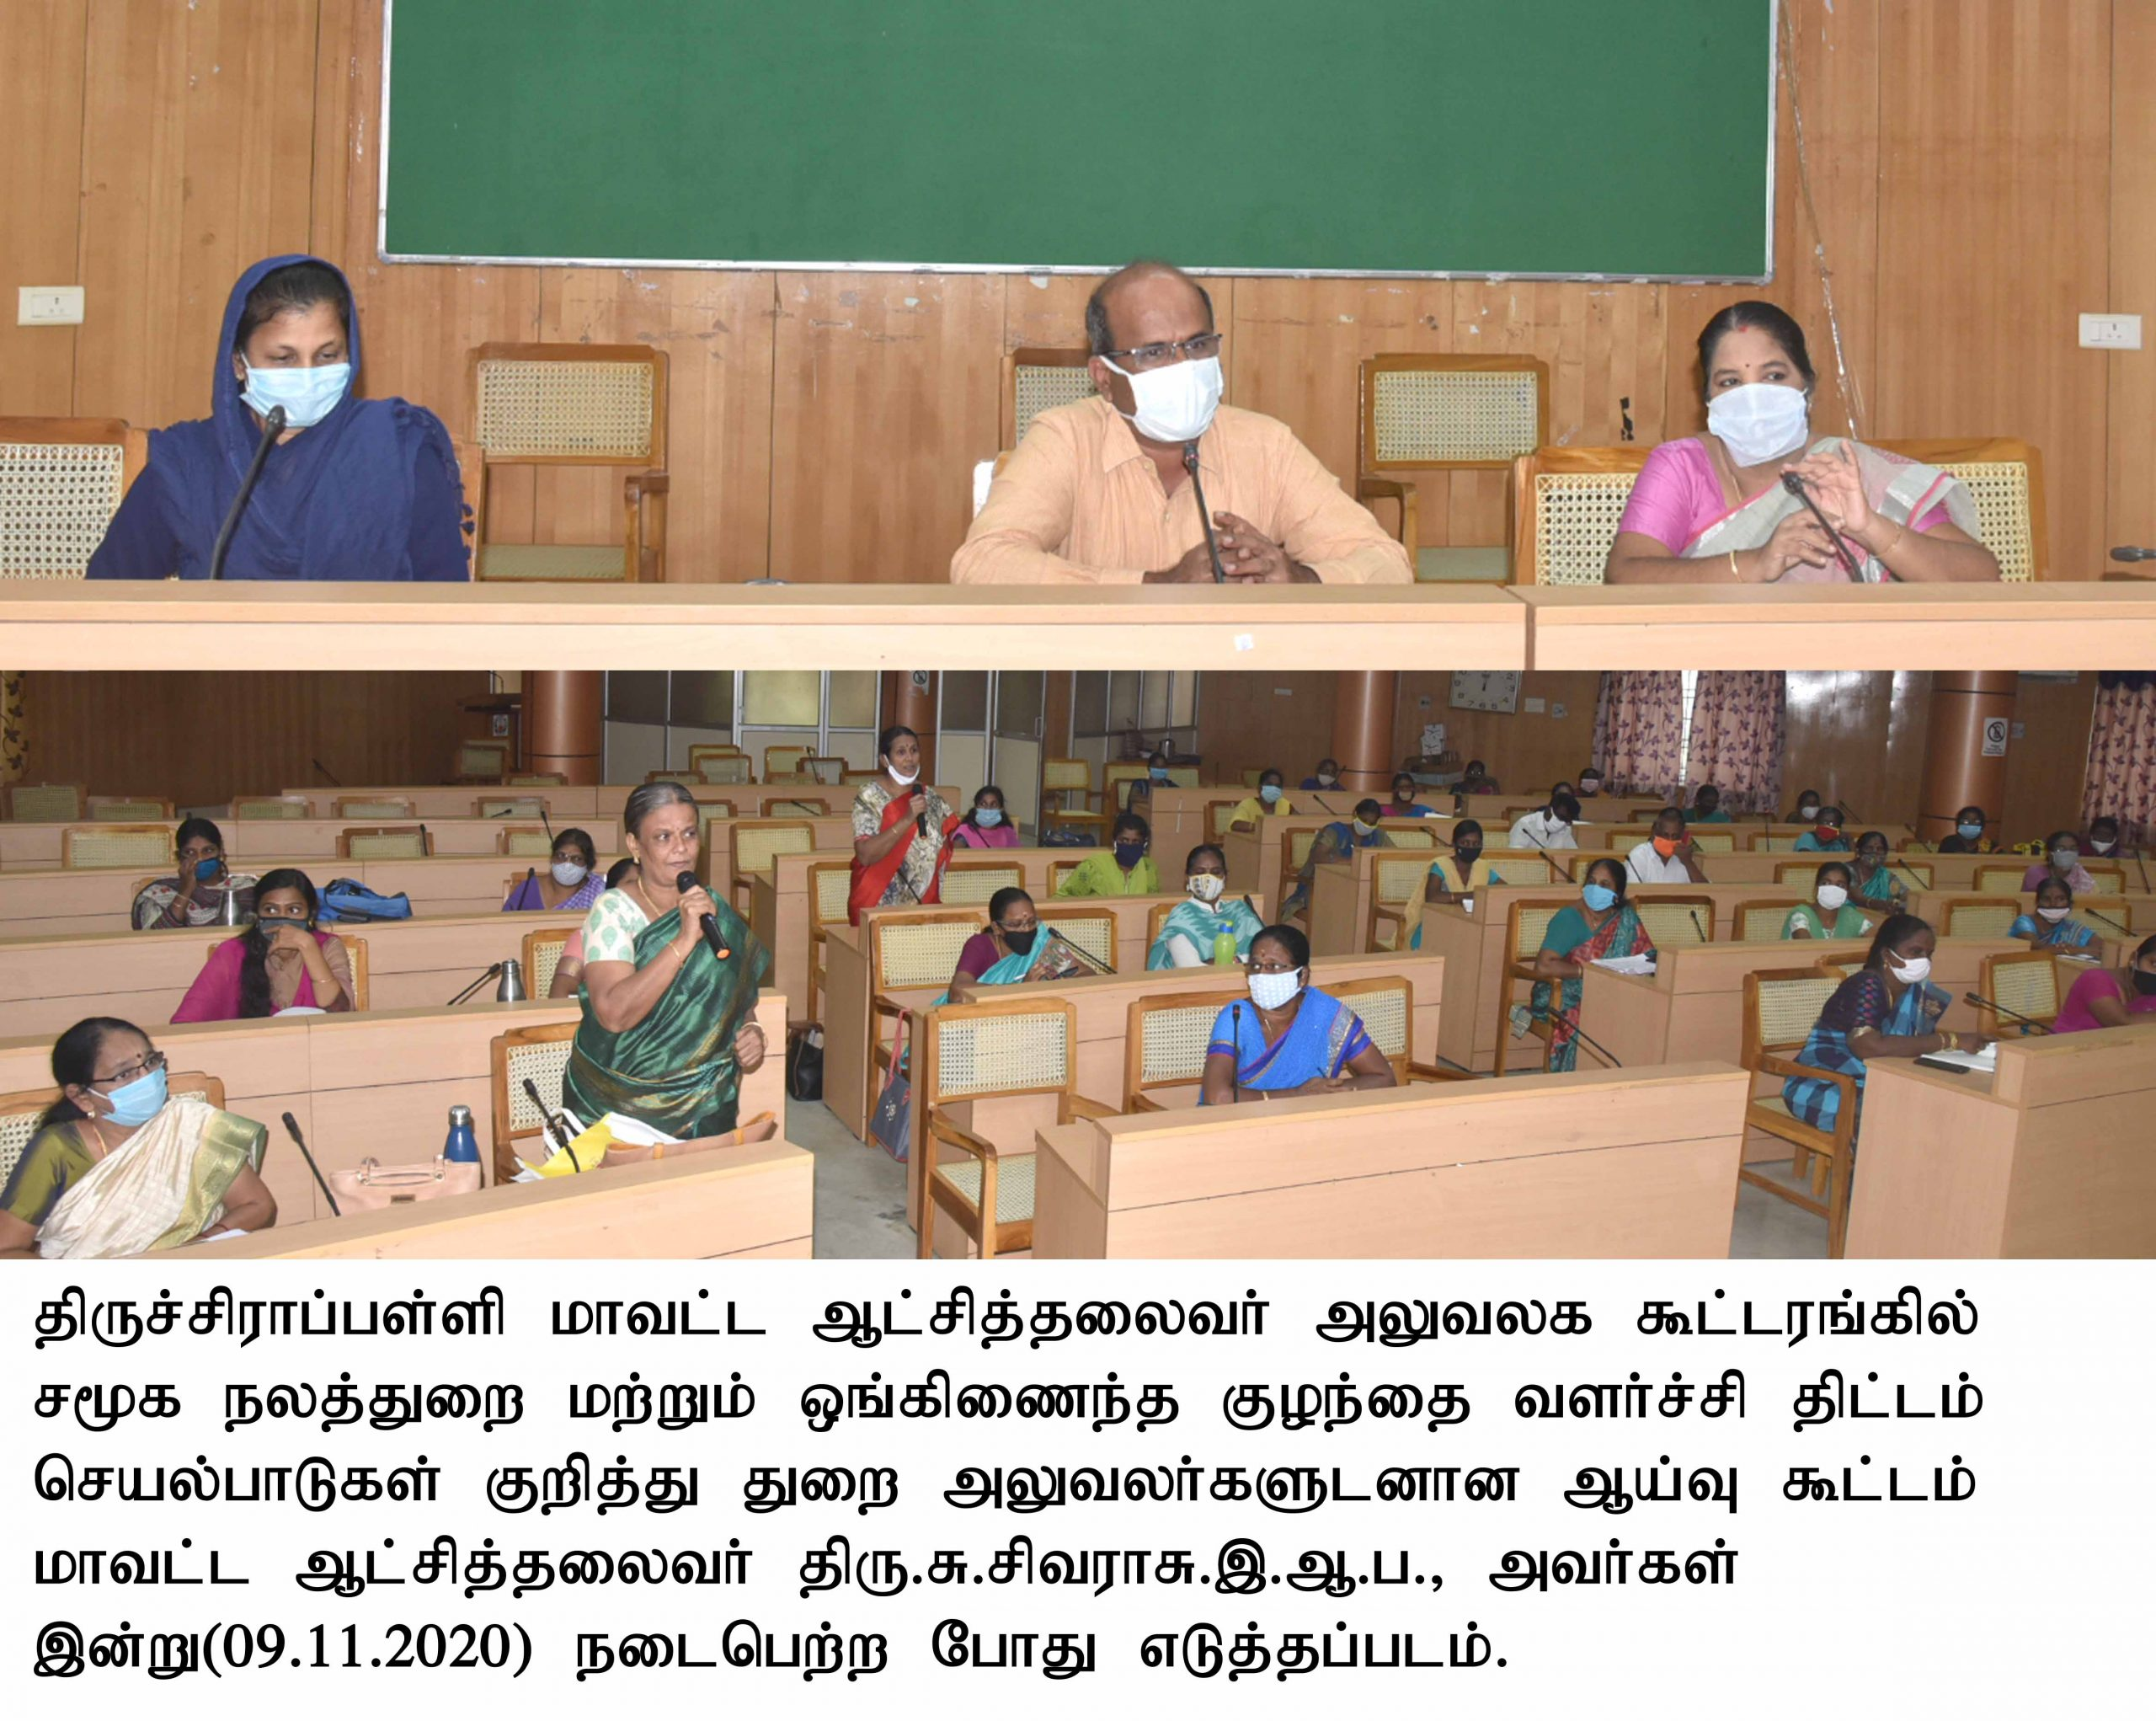 Social Welfare and ICDS Projects Review by Dist. Collr on 09.11.2020